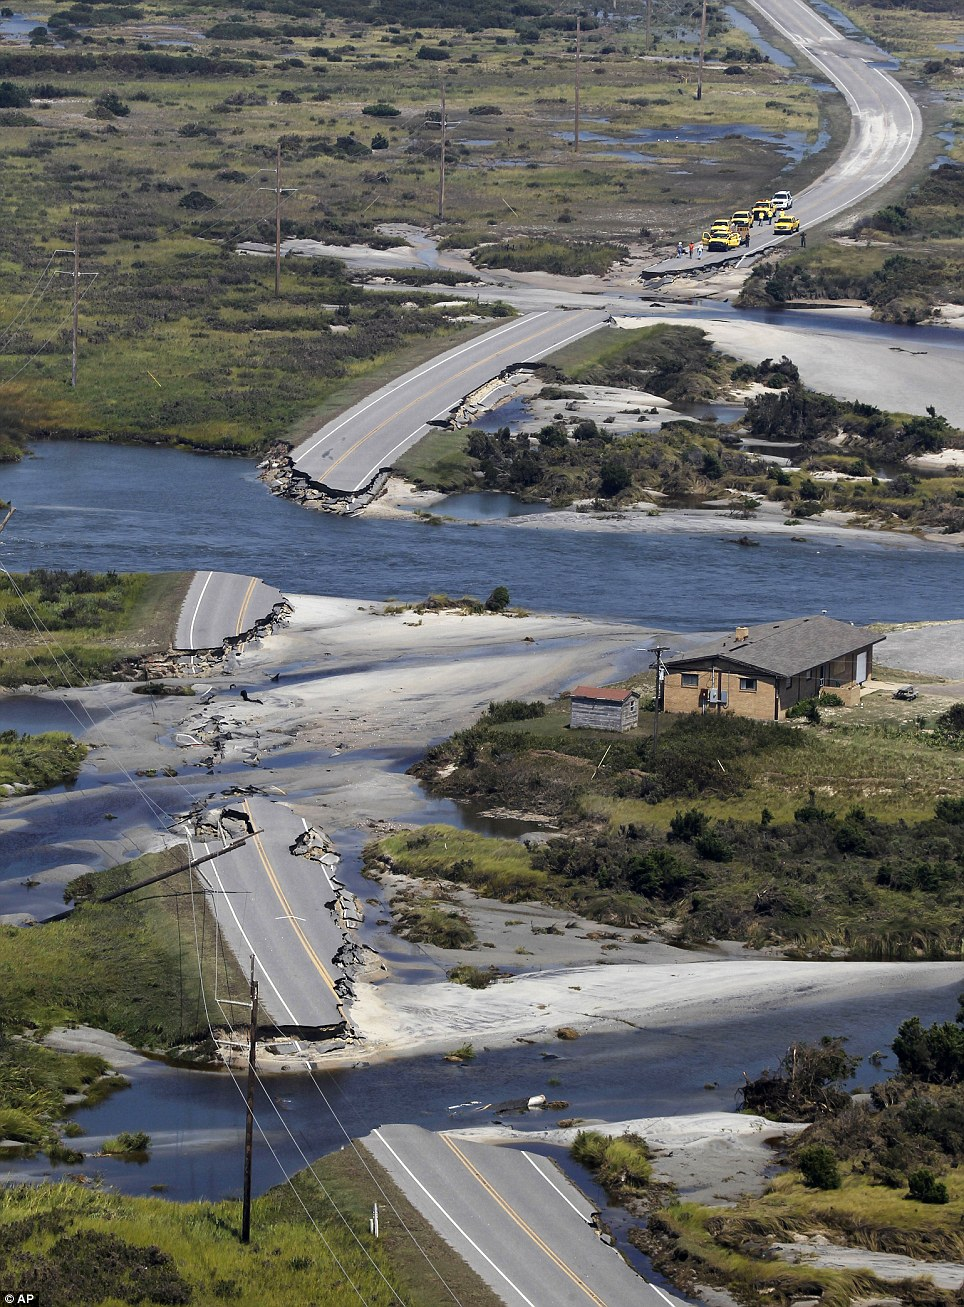 Destruction: Route 12 on Hatteras Island, North Carolina yesterday after Irene swept through the area, cutting the roadway in five locations